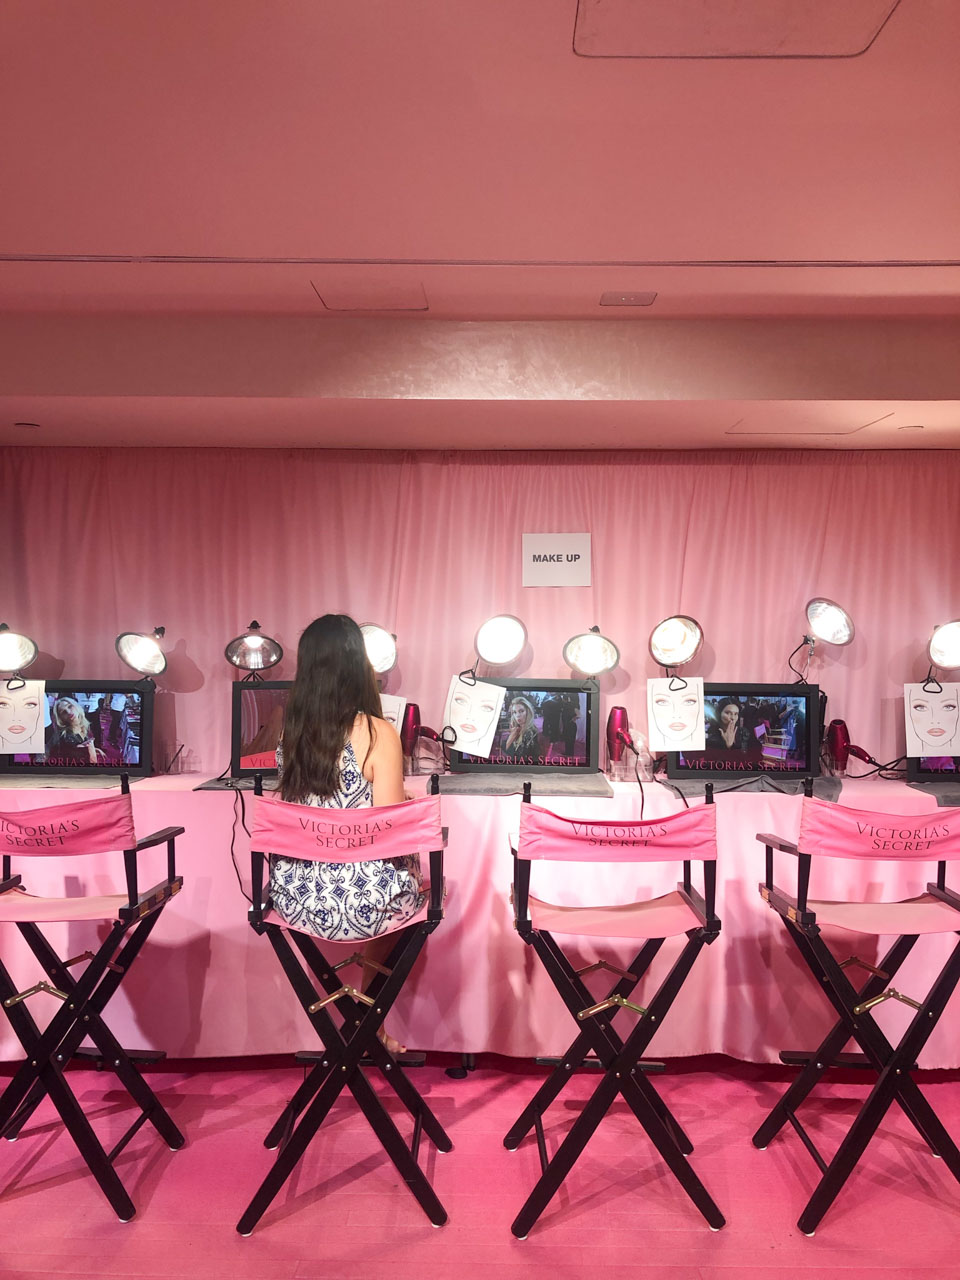 A girl in a patterned dress sitting in a makeup chair inside the Victoria's Secret Fifth Avenue store